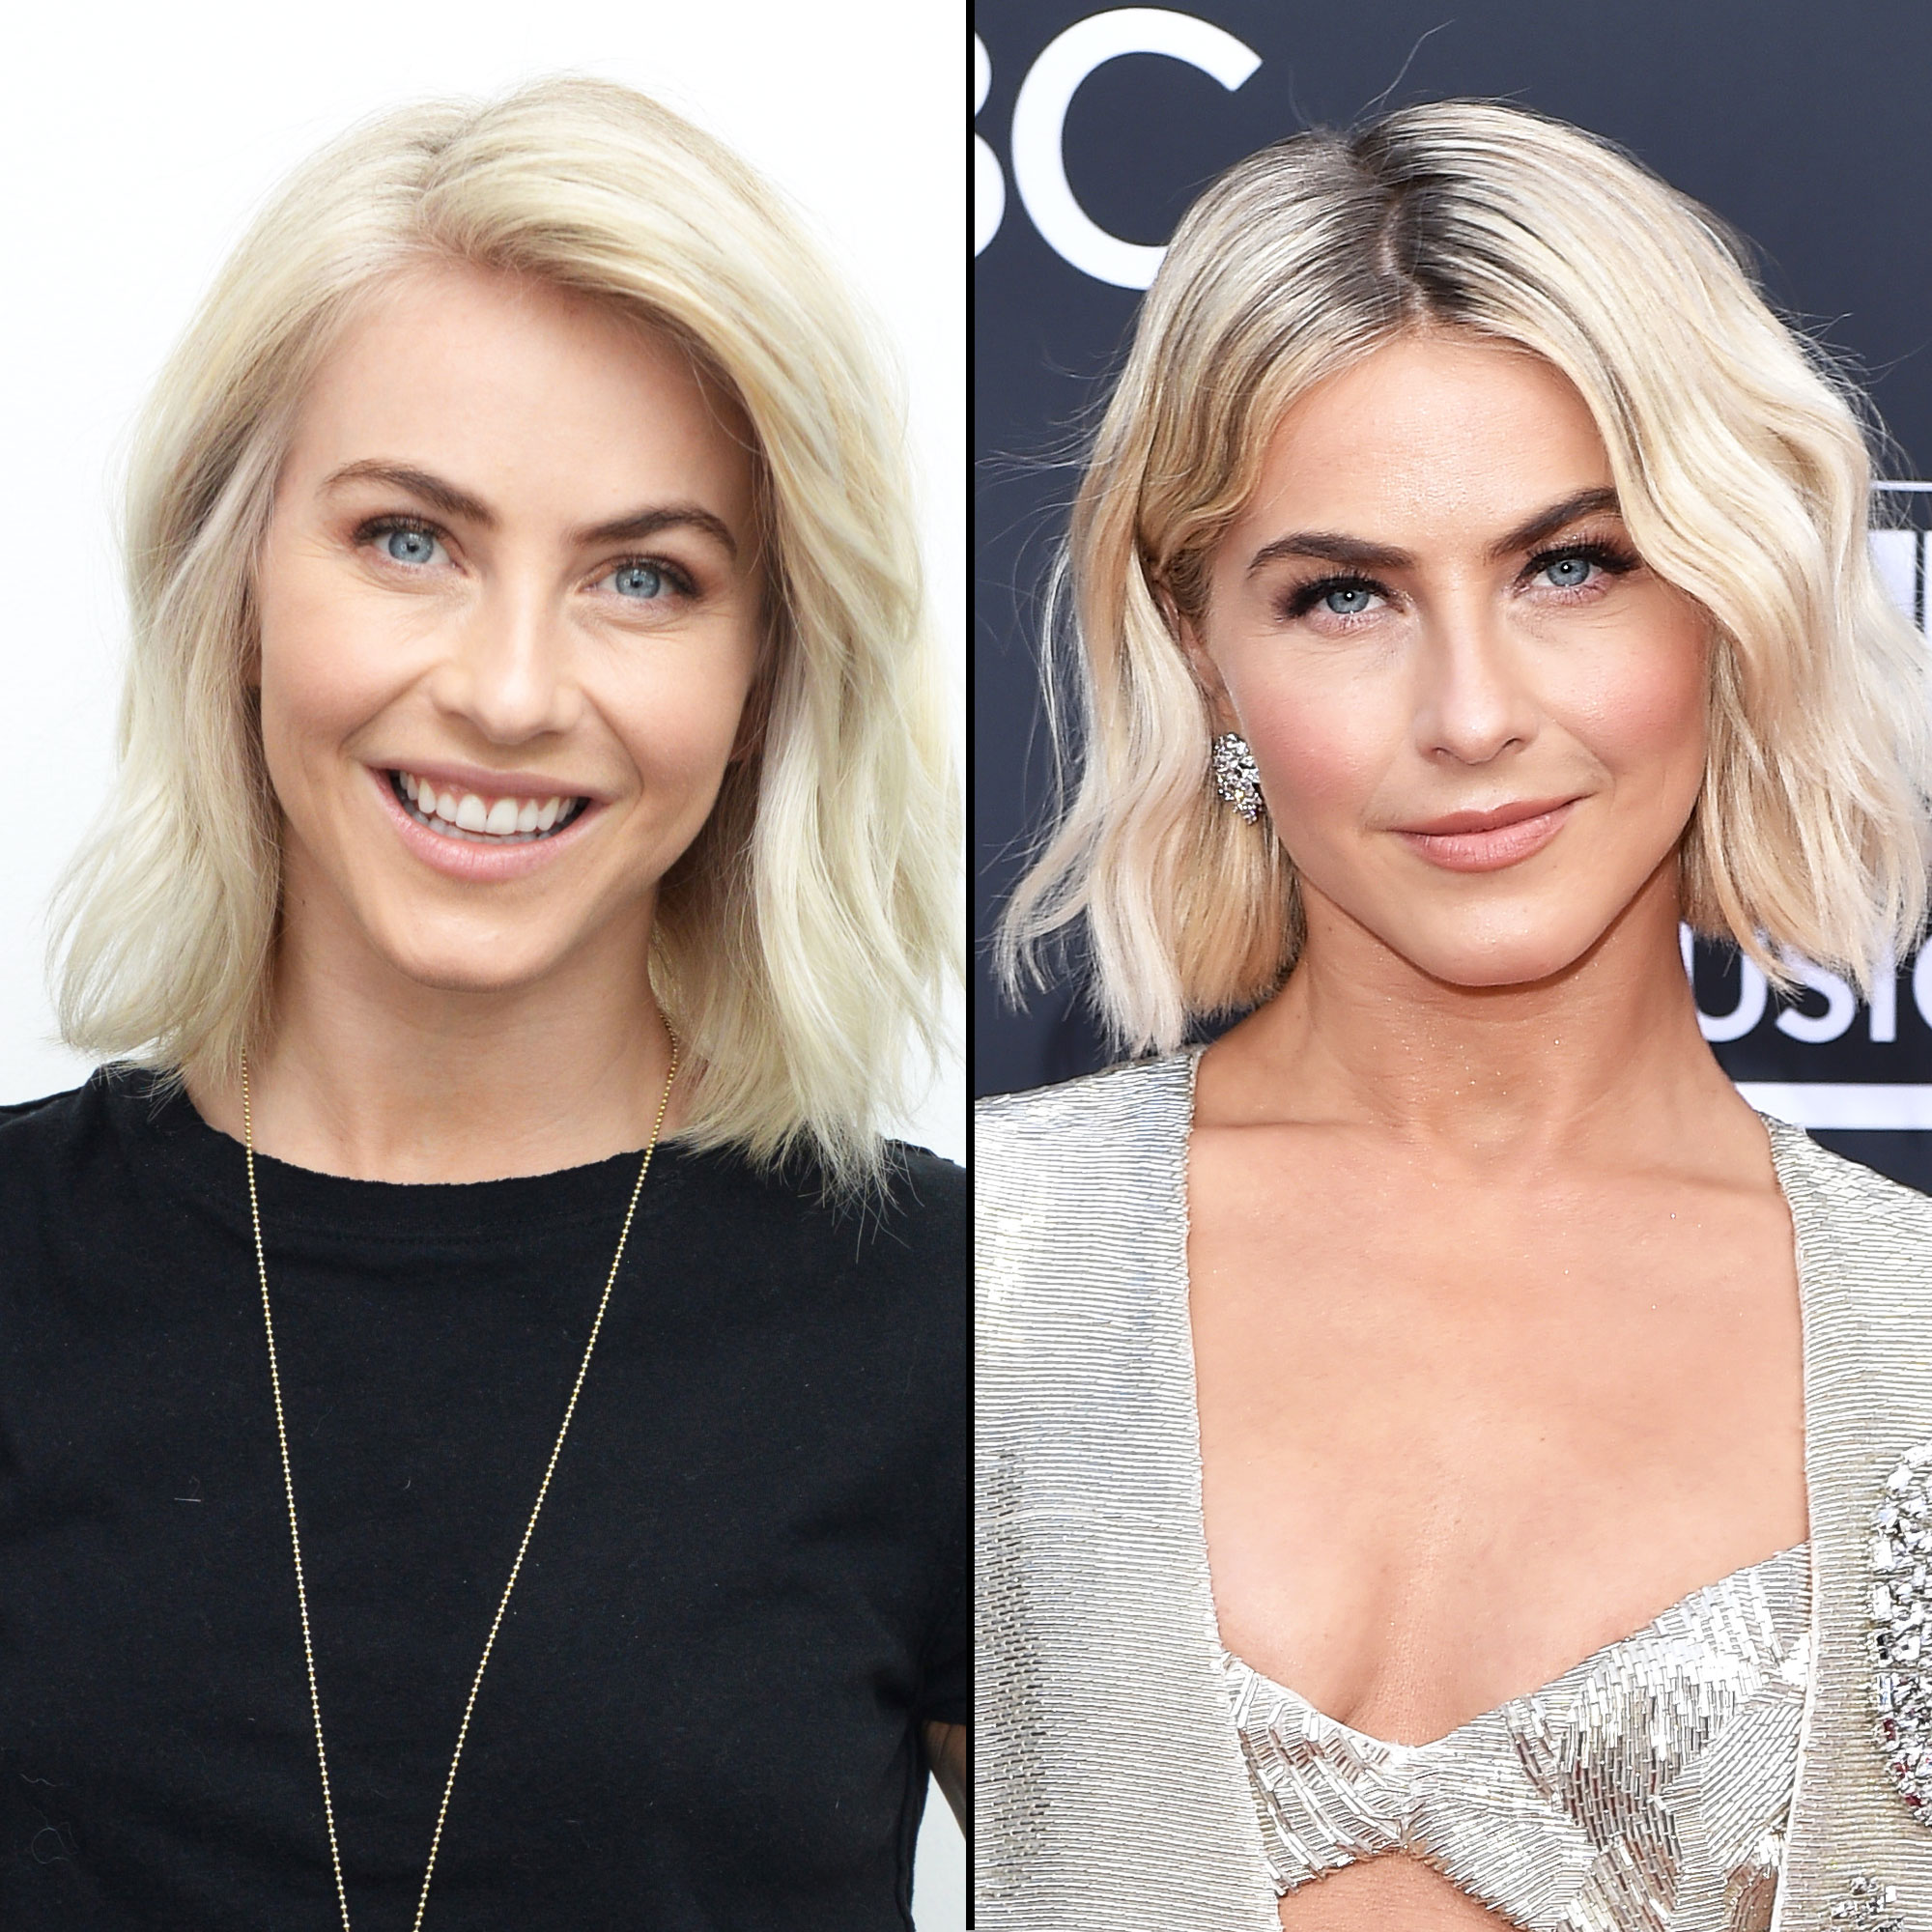 """Julianne Hough hair transformation - At the Billboard Music Awards on May 1, the blonde beauty showed off her fresh """"blunt, thick"""" bob courtesy of long-time stylist Riawna Capri. """"She wanted to grow it out,"""" Capri explained in a statement."""